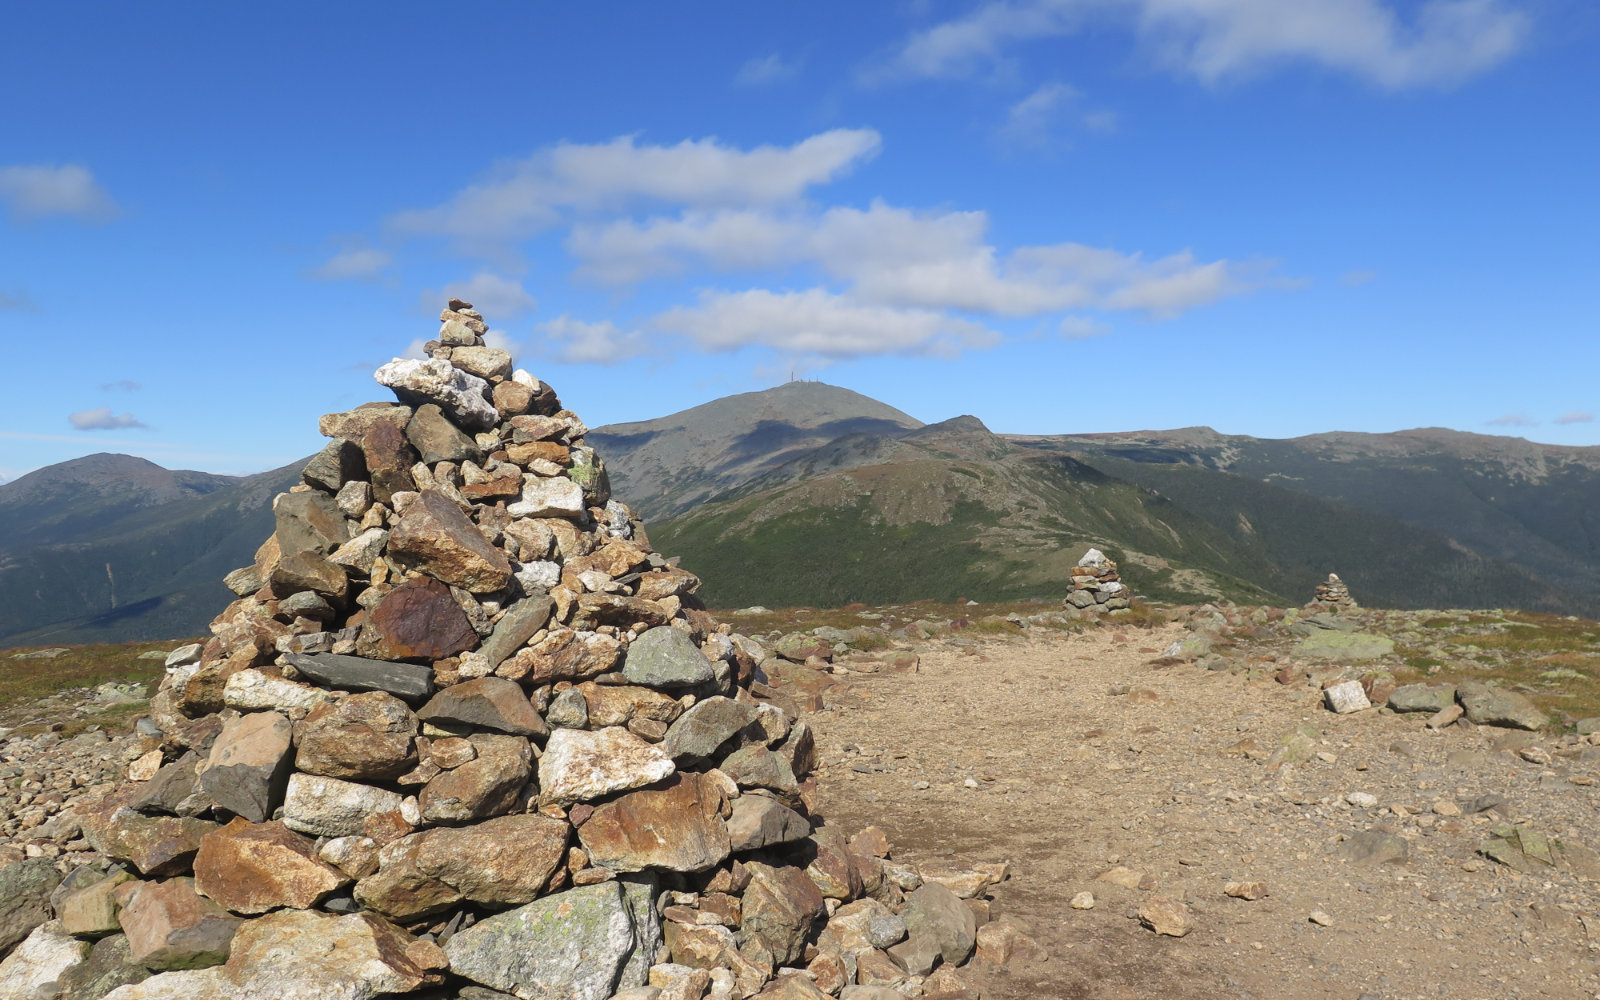 Cairn-Eisenhower-Summit-WJPE-20190905